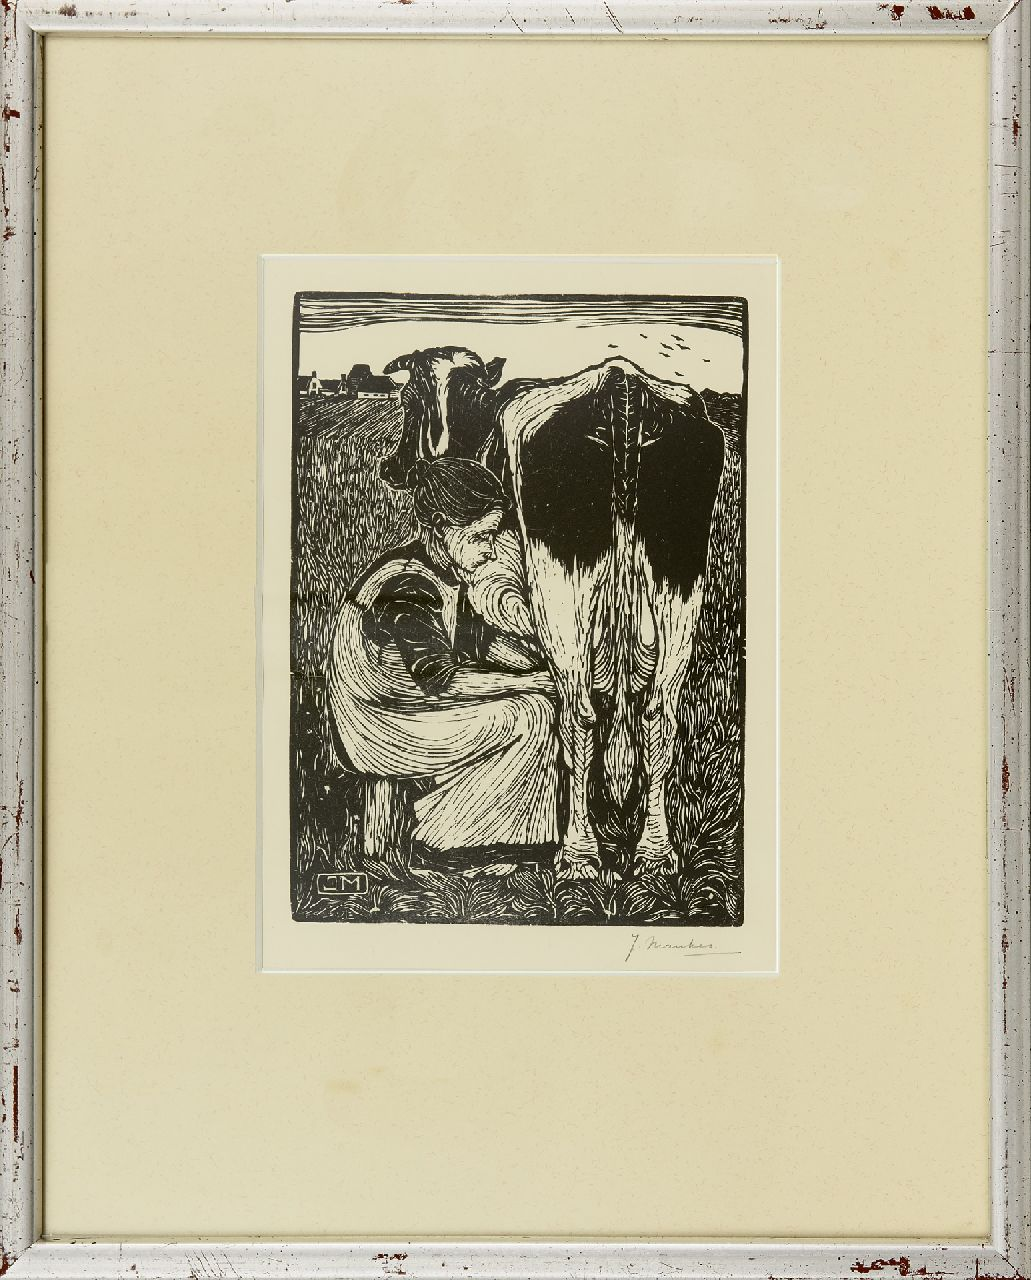 Mankes J.  | Jan Mankes | Prints and Multiples offered for sale | Peasant woman milking a cow, woodcut on paper 22.0 x 16.0 cm, signed l.r.